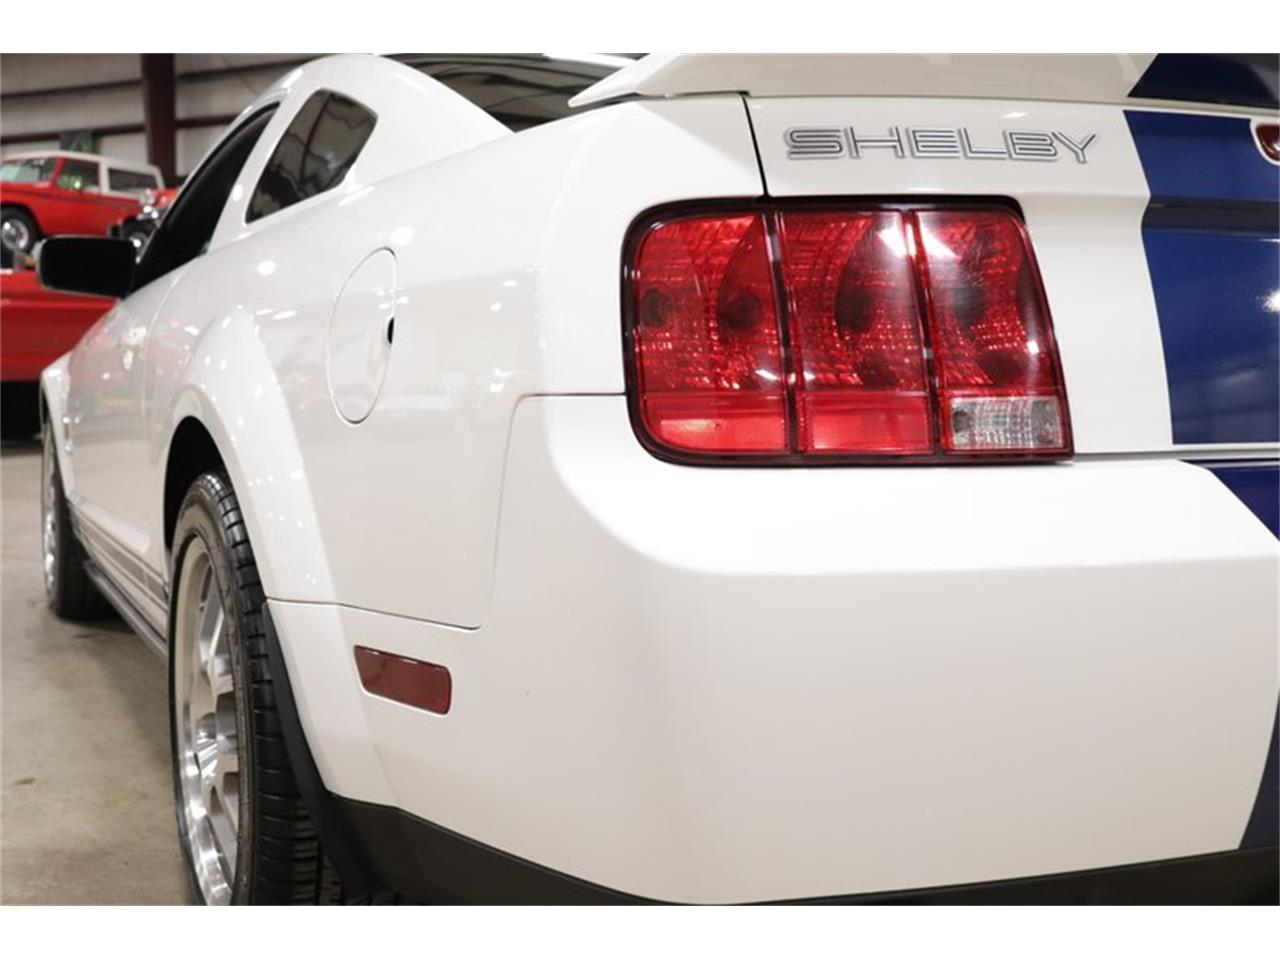 2008 Shelby GT500 for sale in Kentwood, MI – photo 52